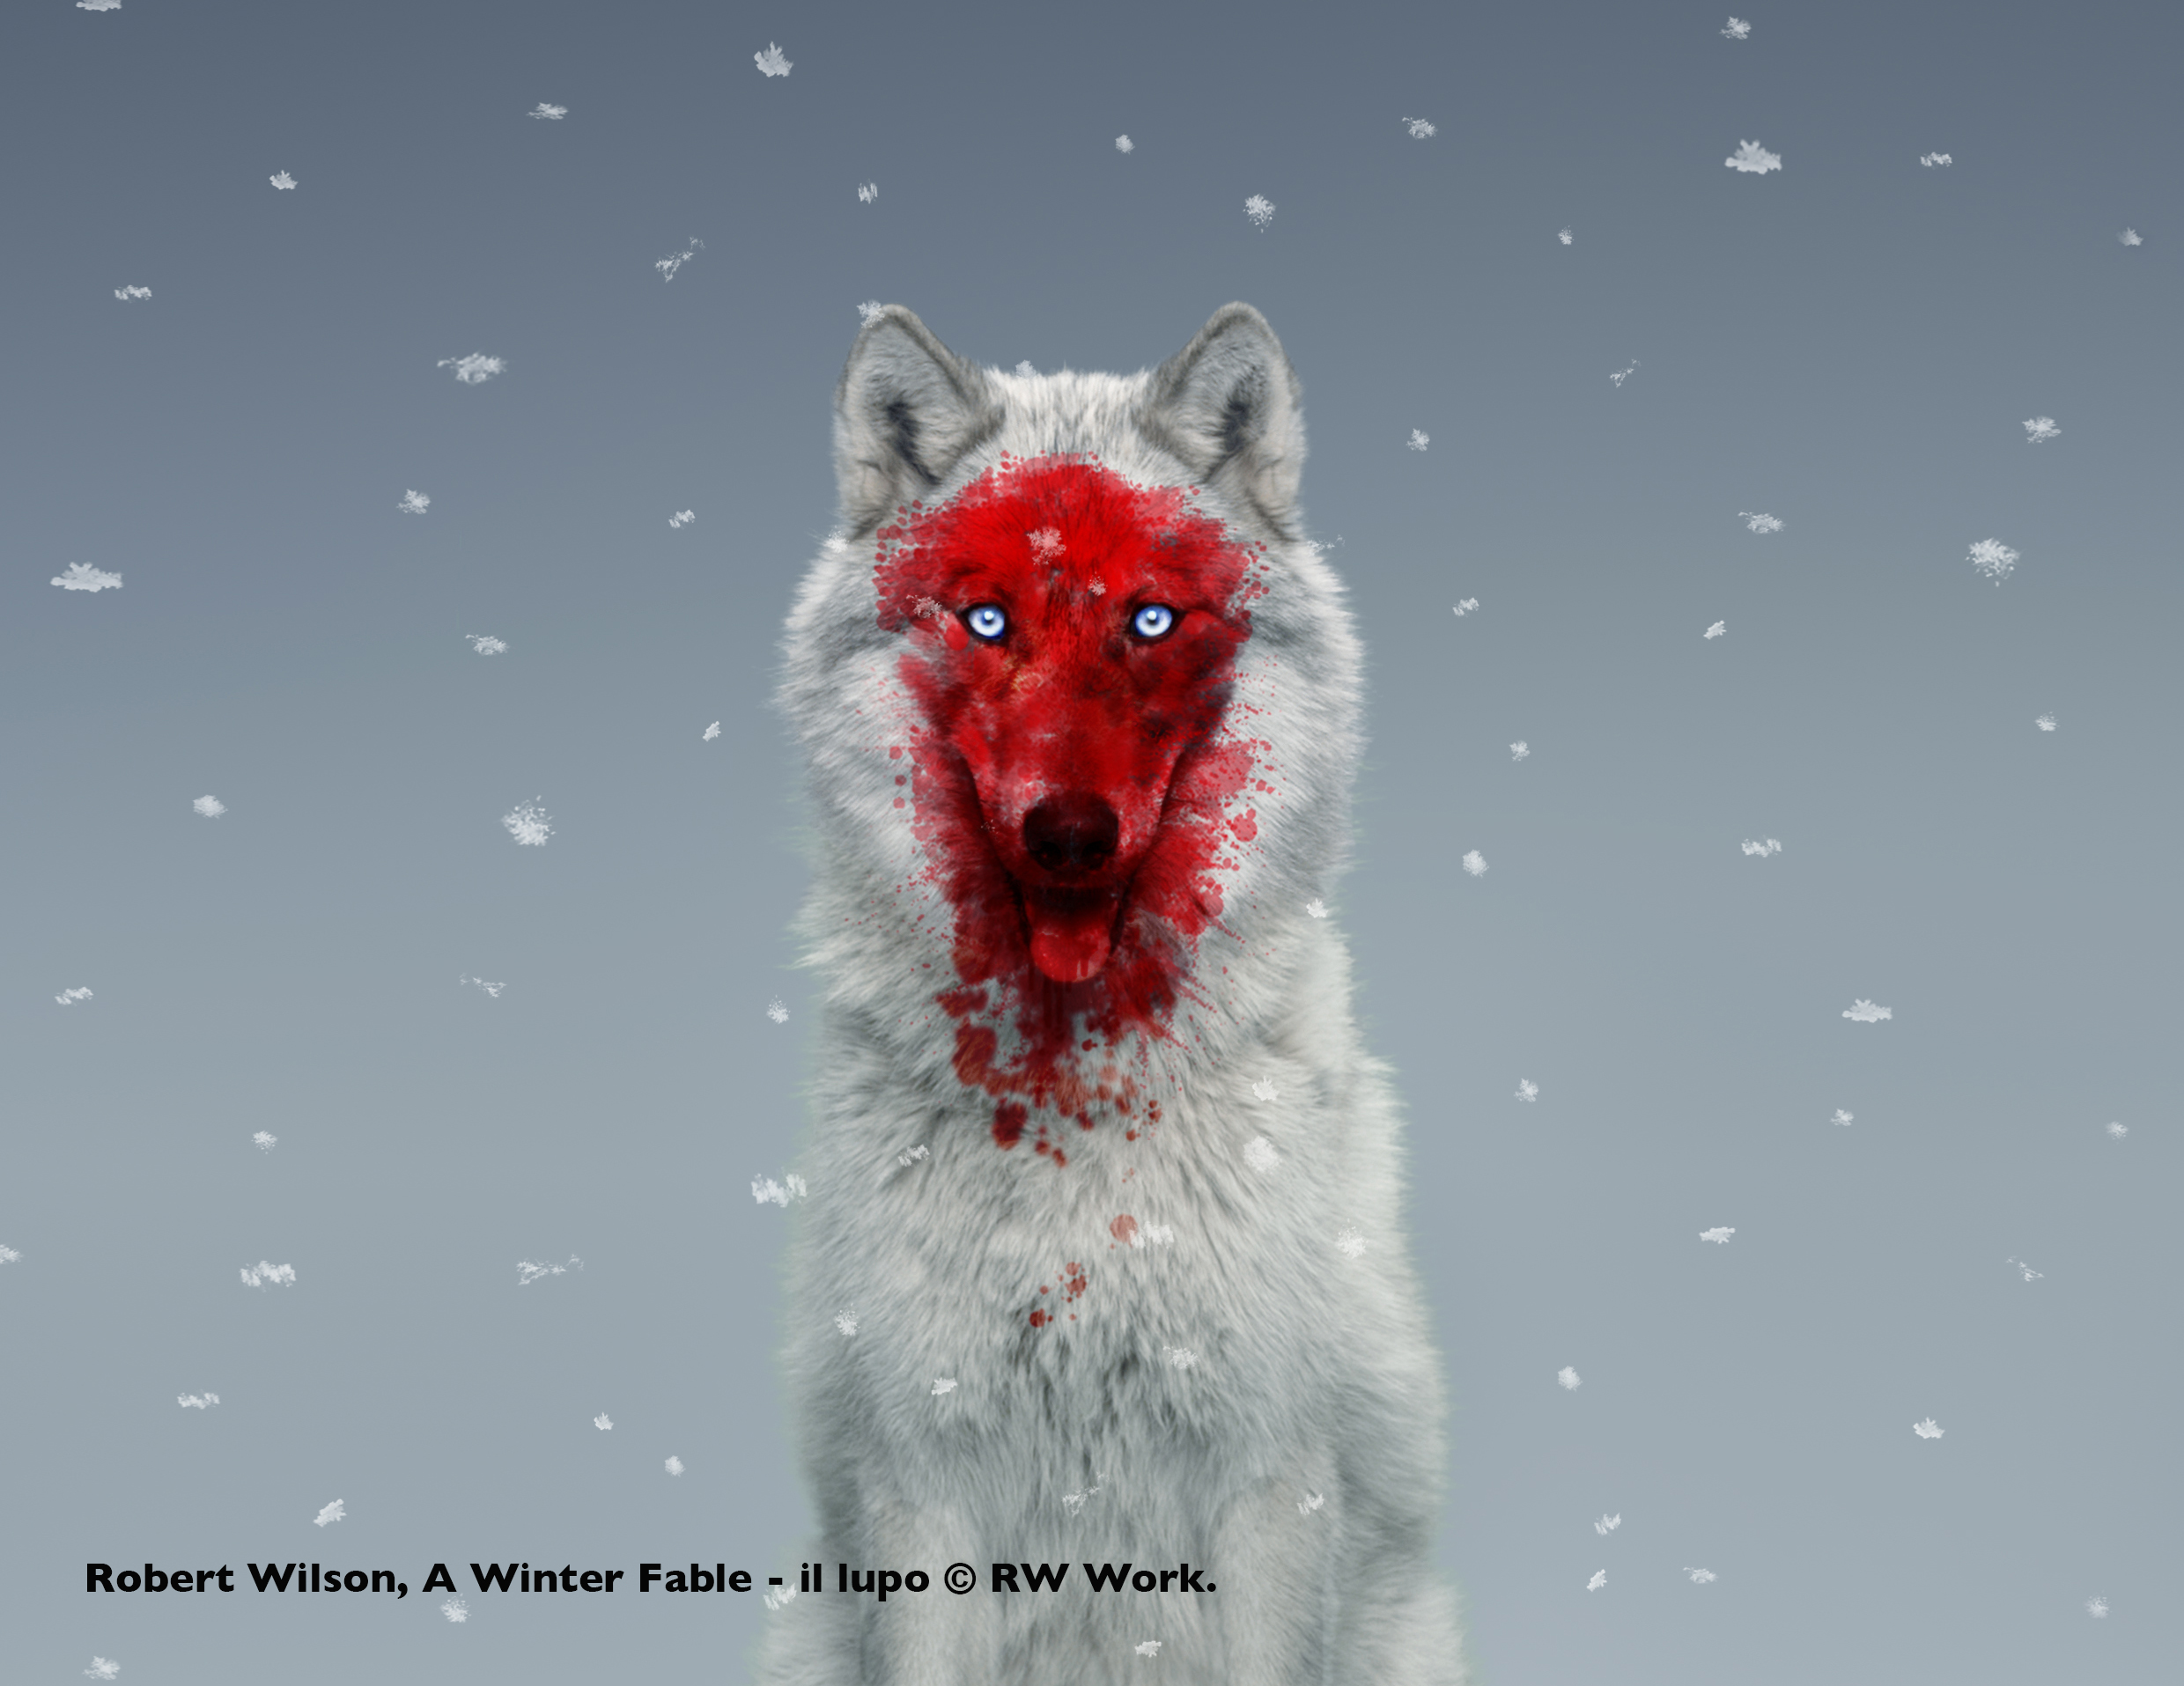 Robert Wilson, A Winter Fable - il lupo © RW Work.